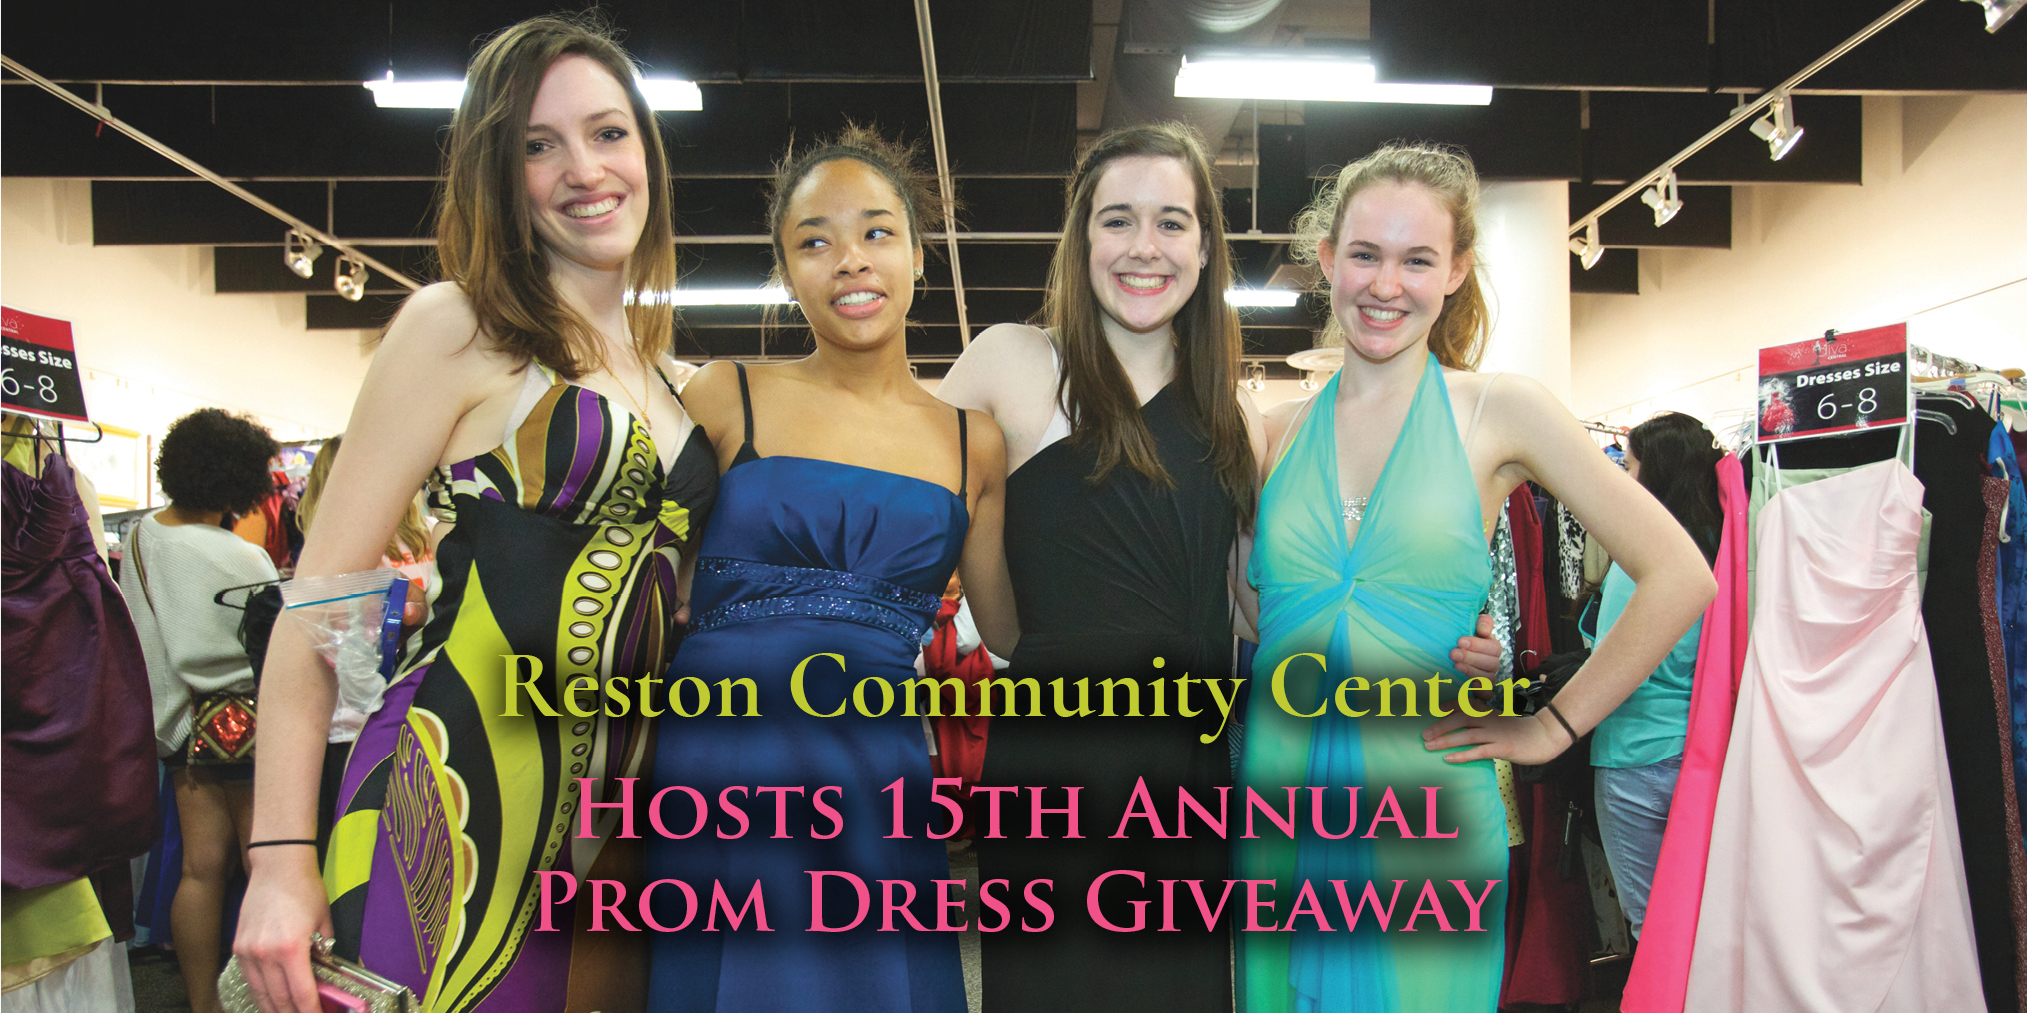 Reston Community Center Hosts 15th Annual Prom Dress Giveaway